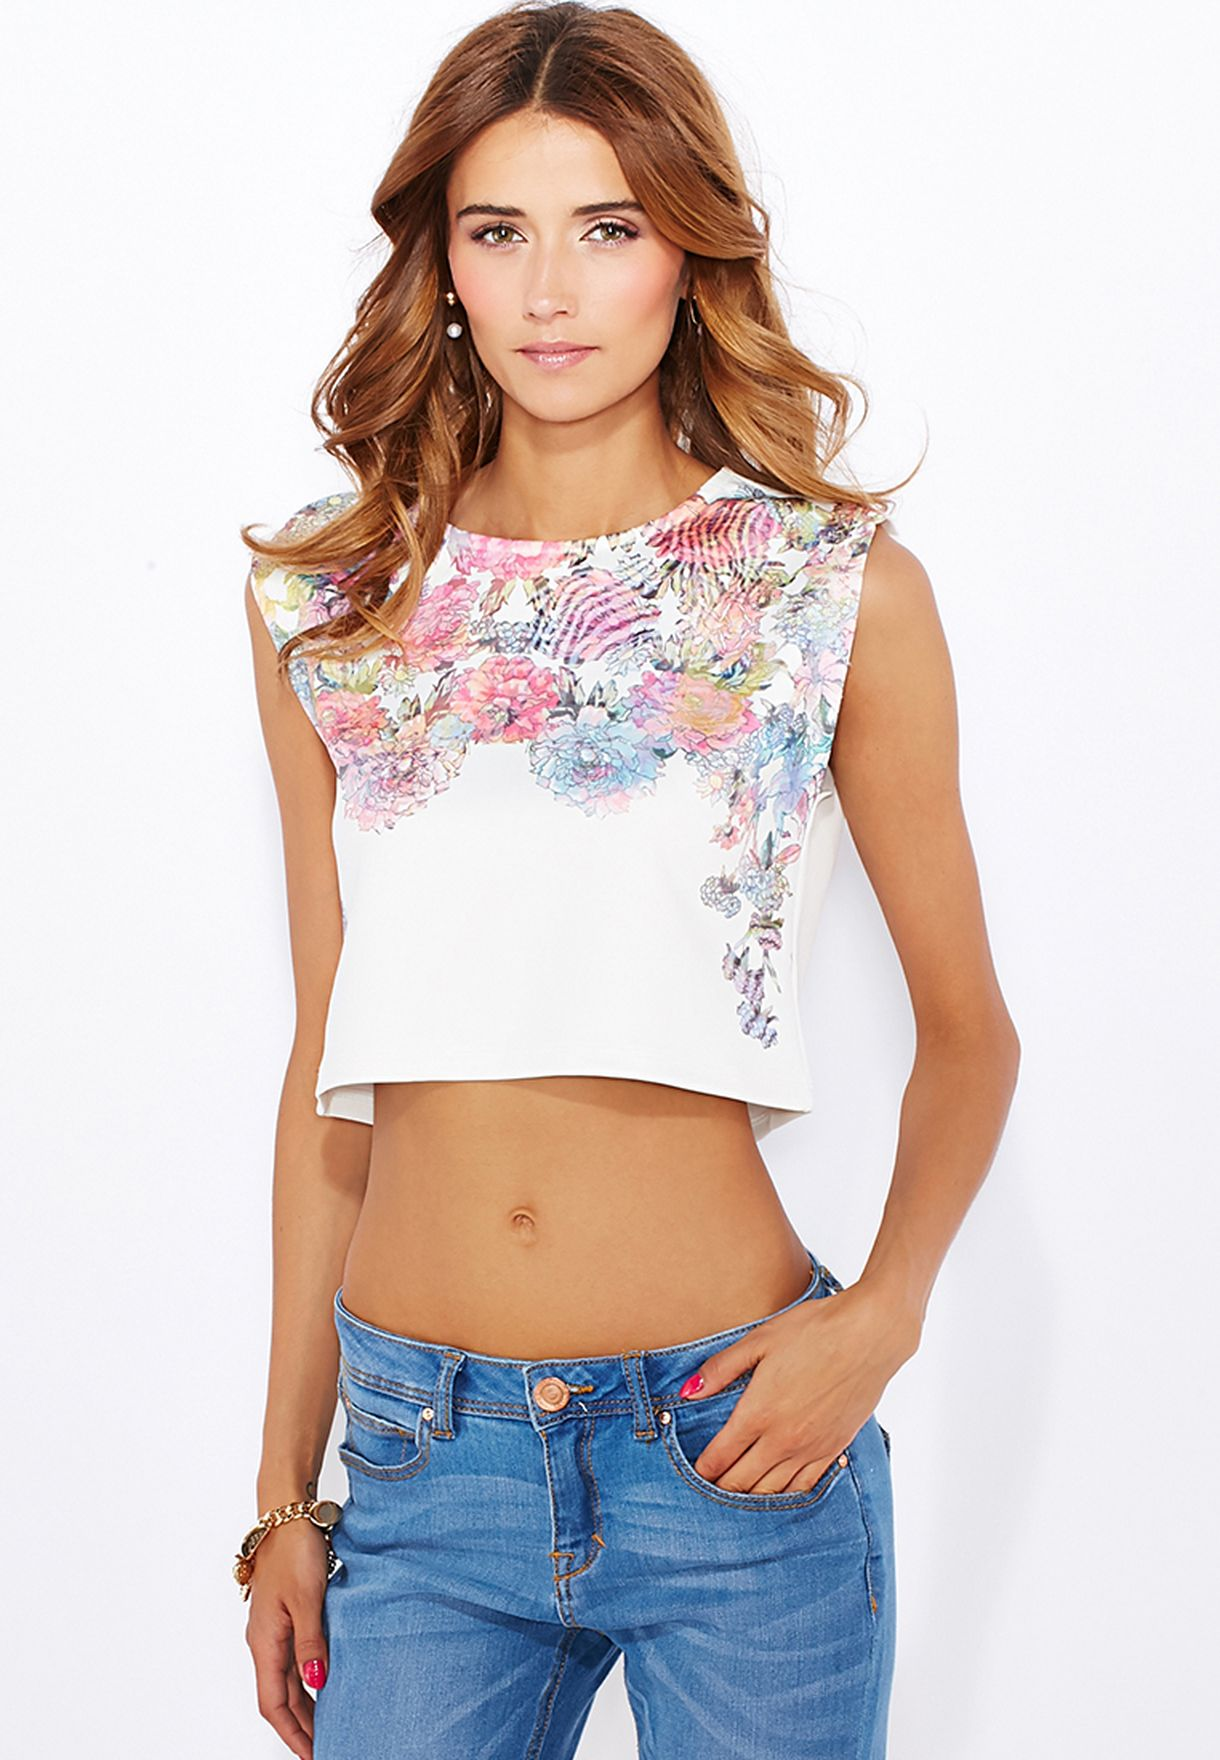 Shop Blanco White Floral Crop Top 105225401 For Women In Uae